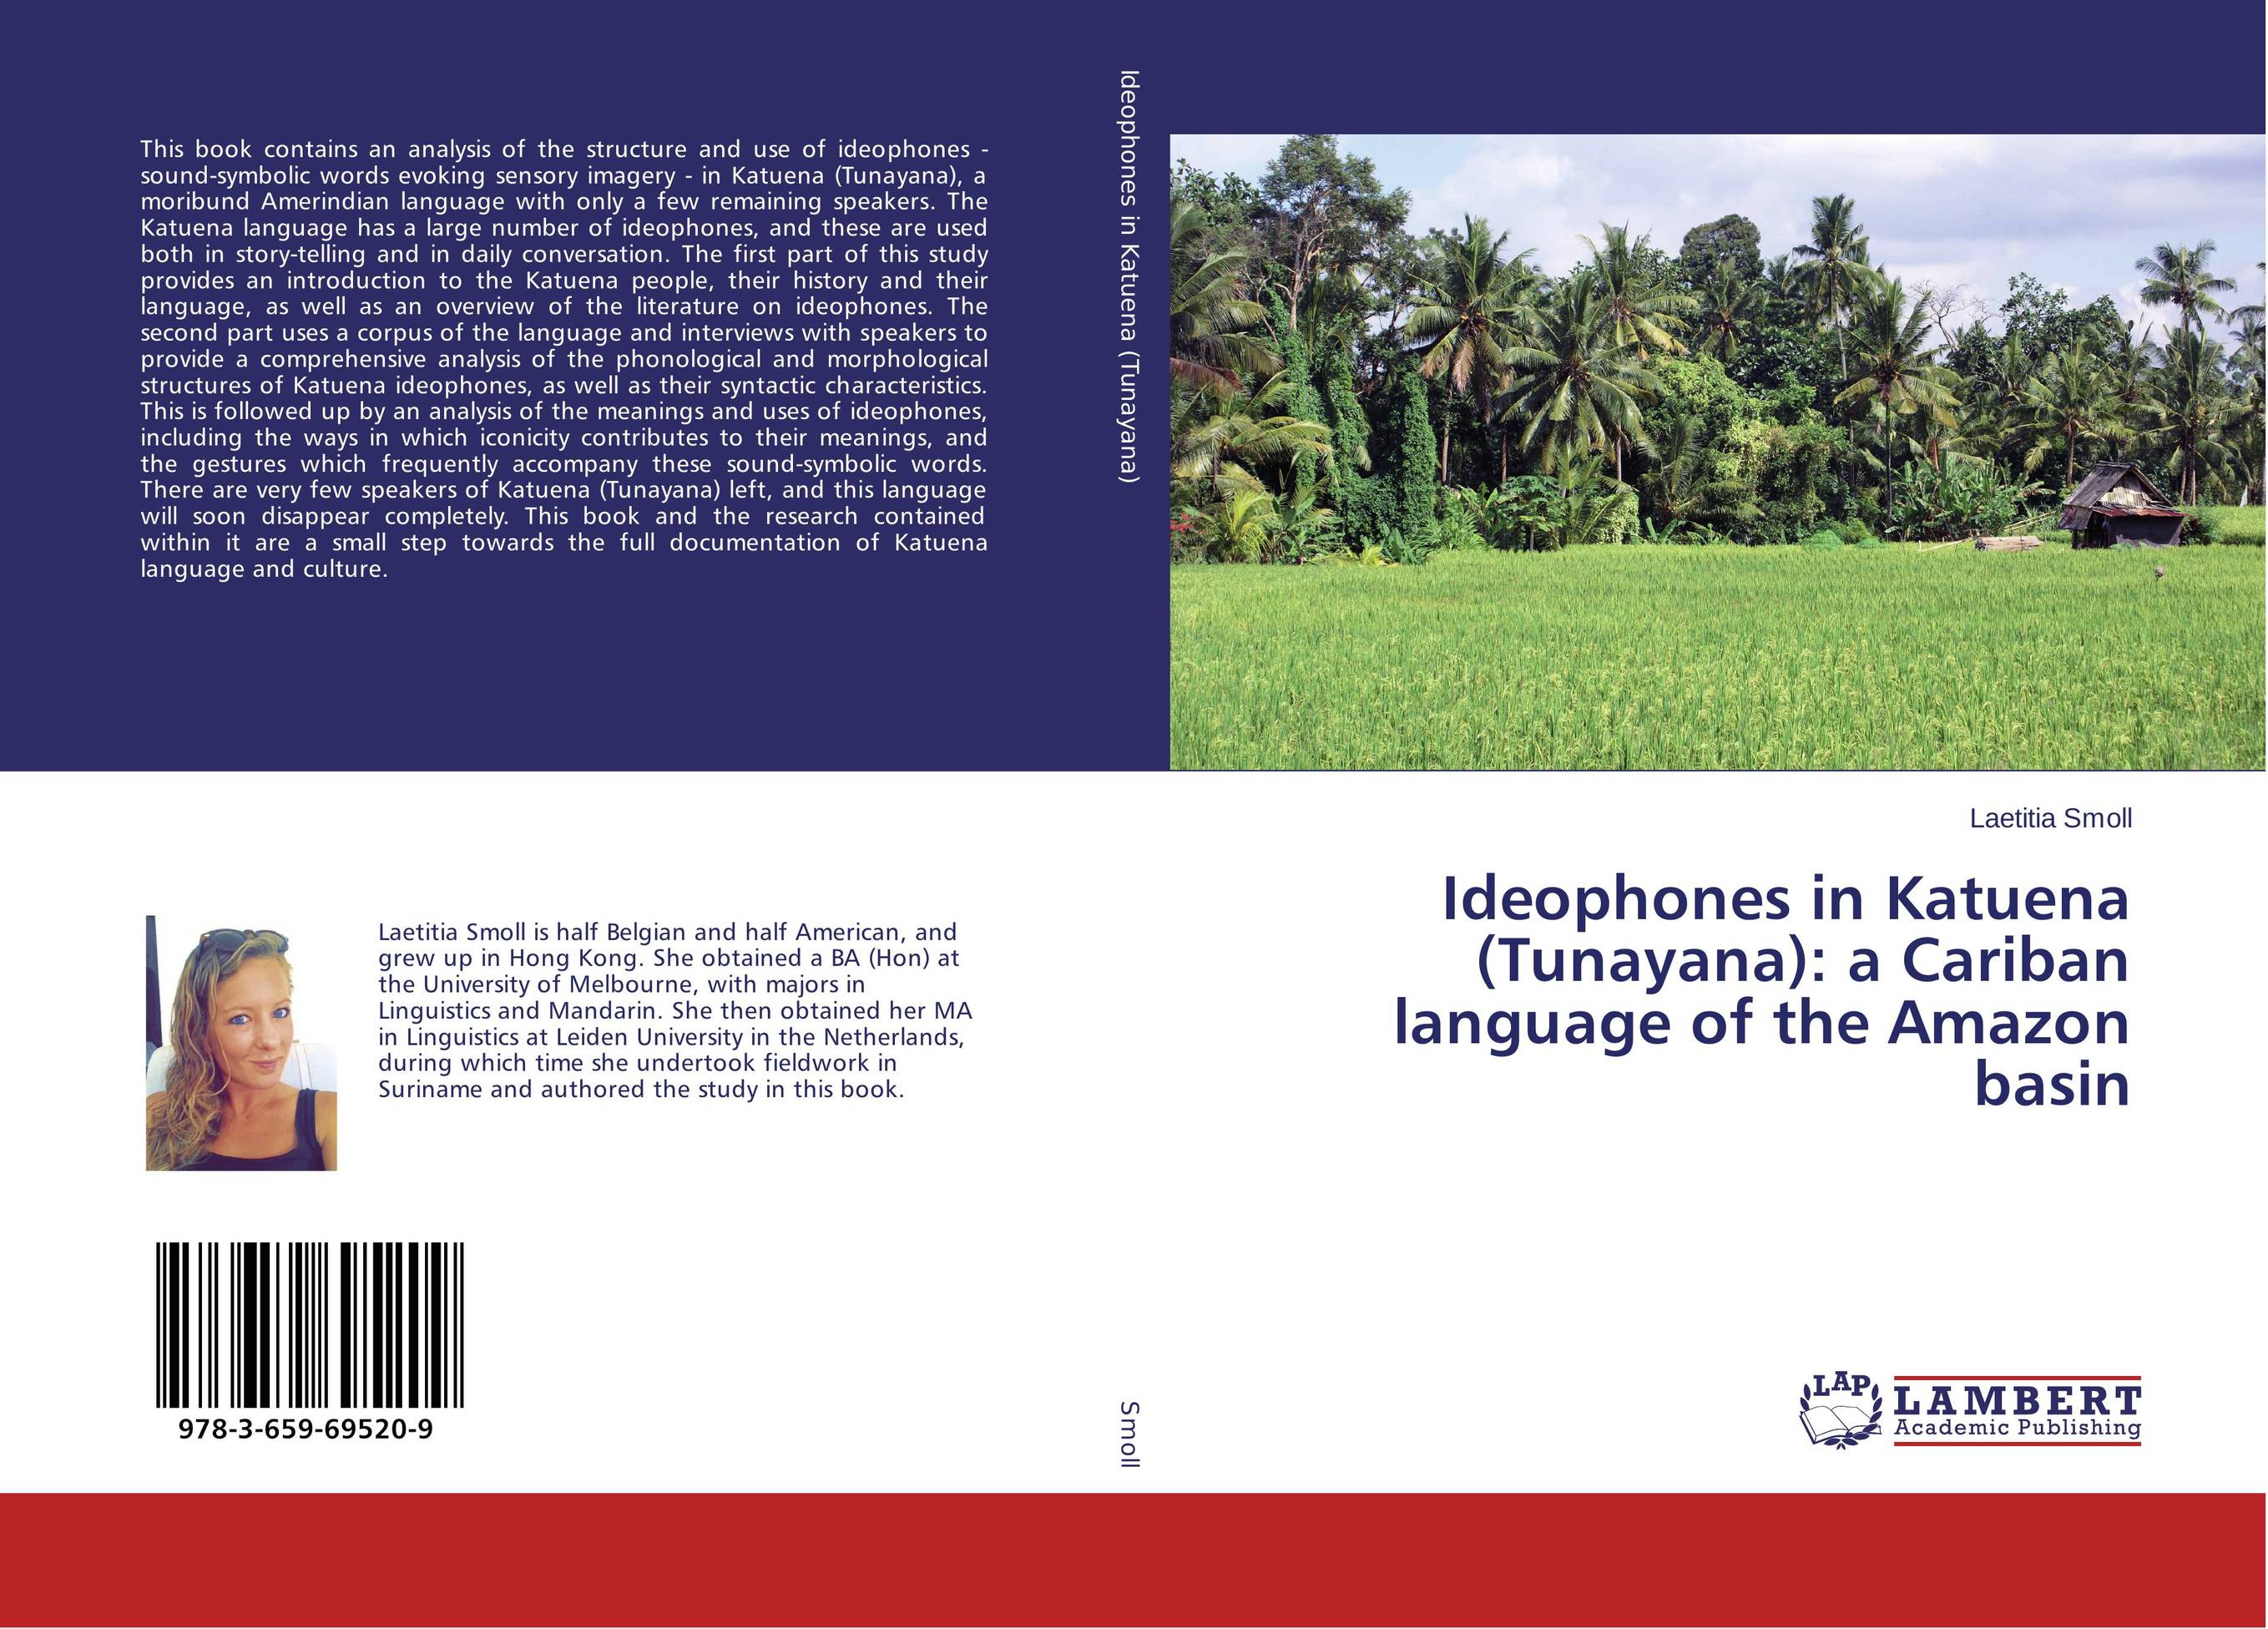 Ideophones in Katuena (Tunayana): a Cariban language of the Amazon basin pramod kumar verma yield gap and constraints analysis in groundnut production